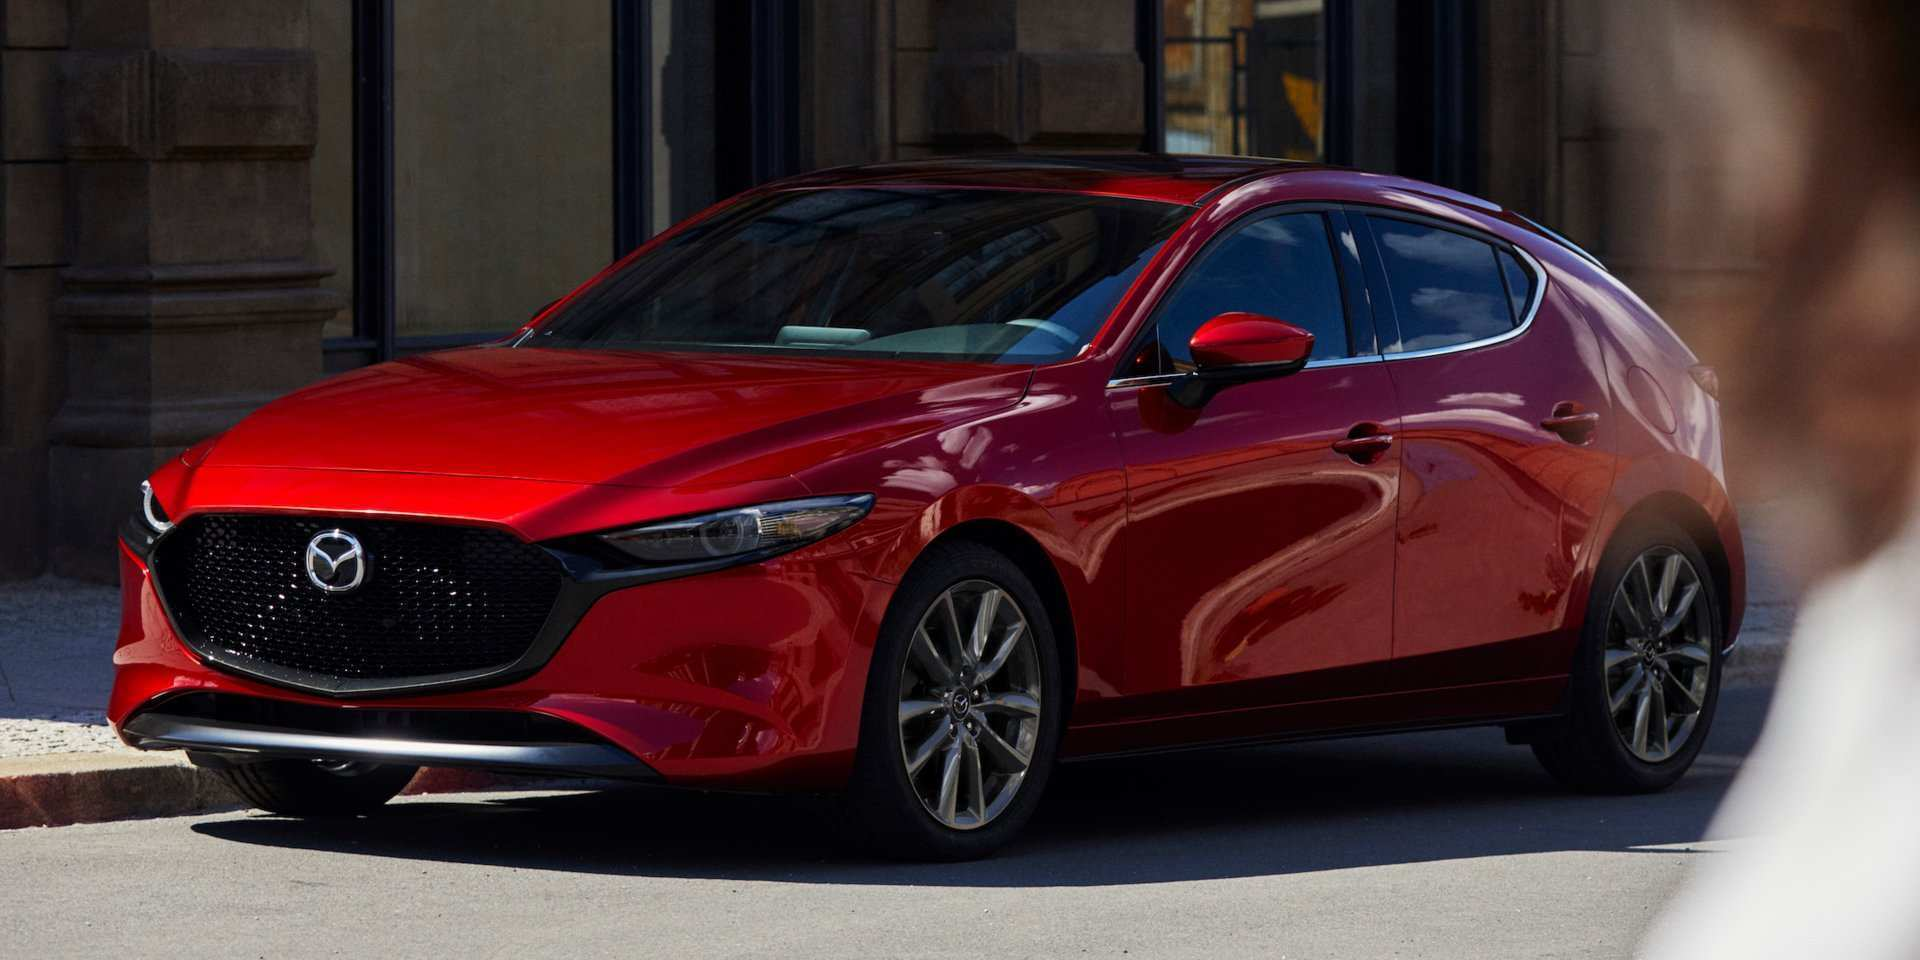 67 The Best Cuando Sale El Mazda 3 2019 Redesign And Review